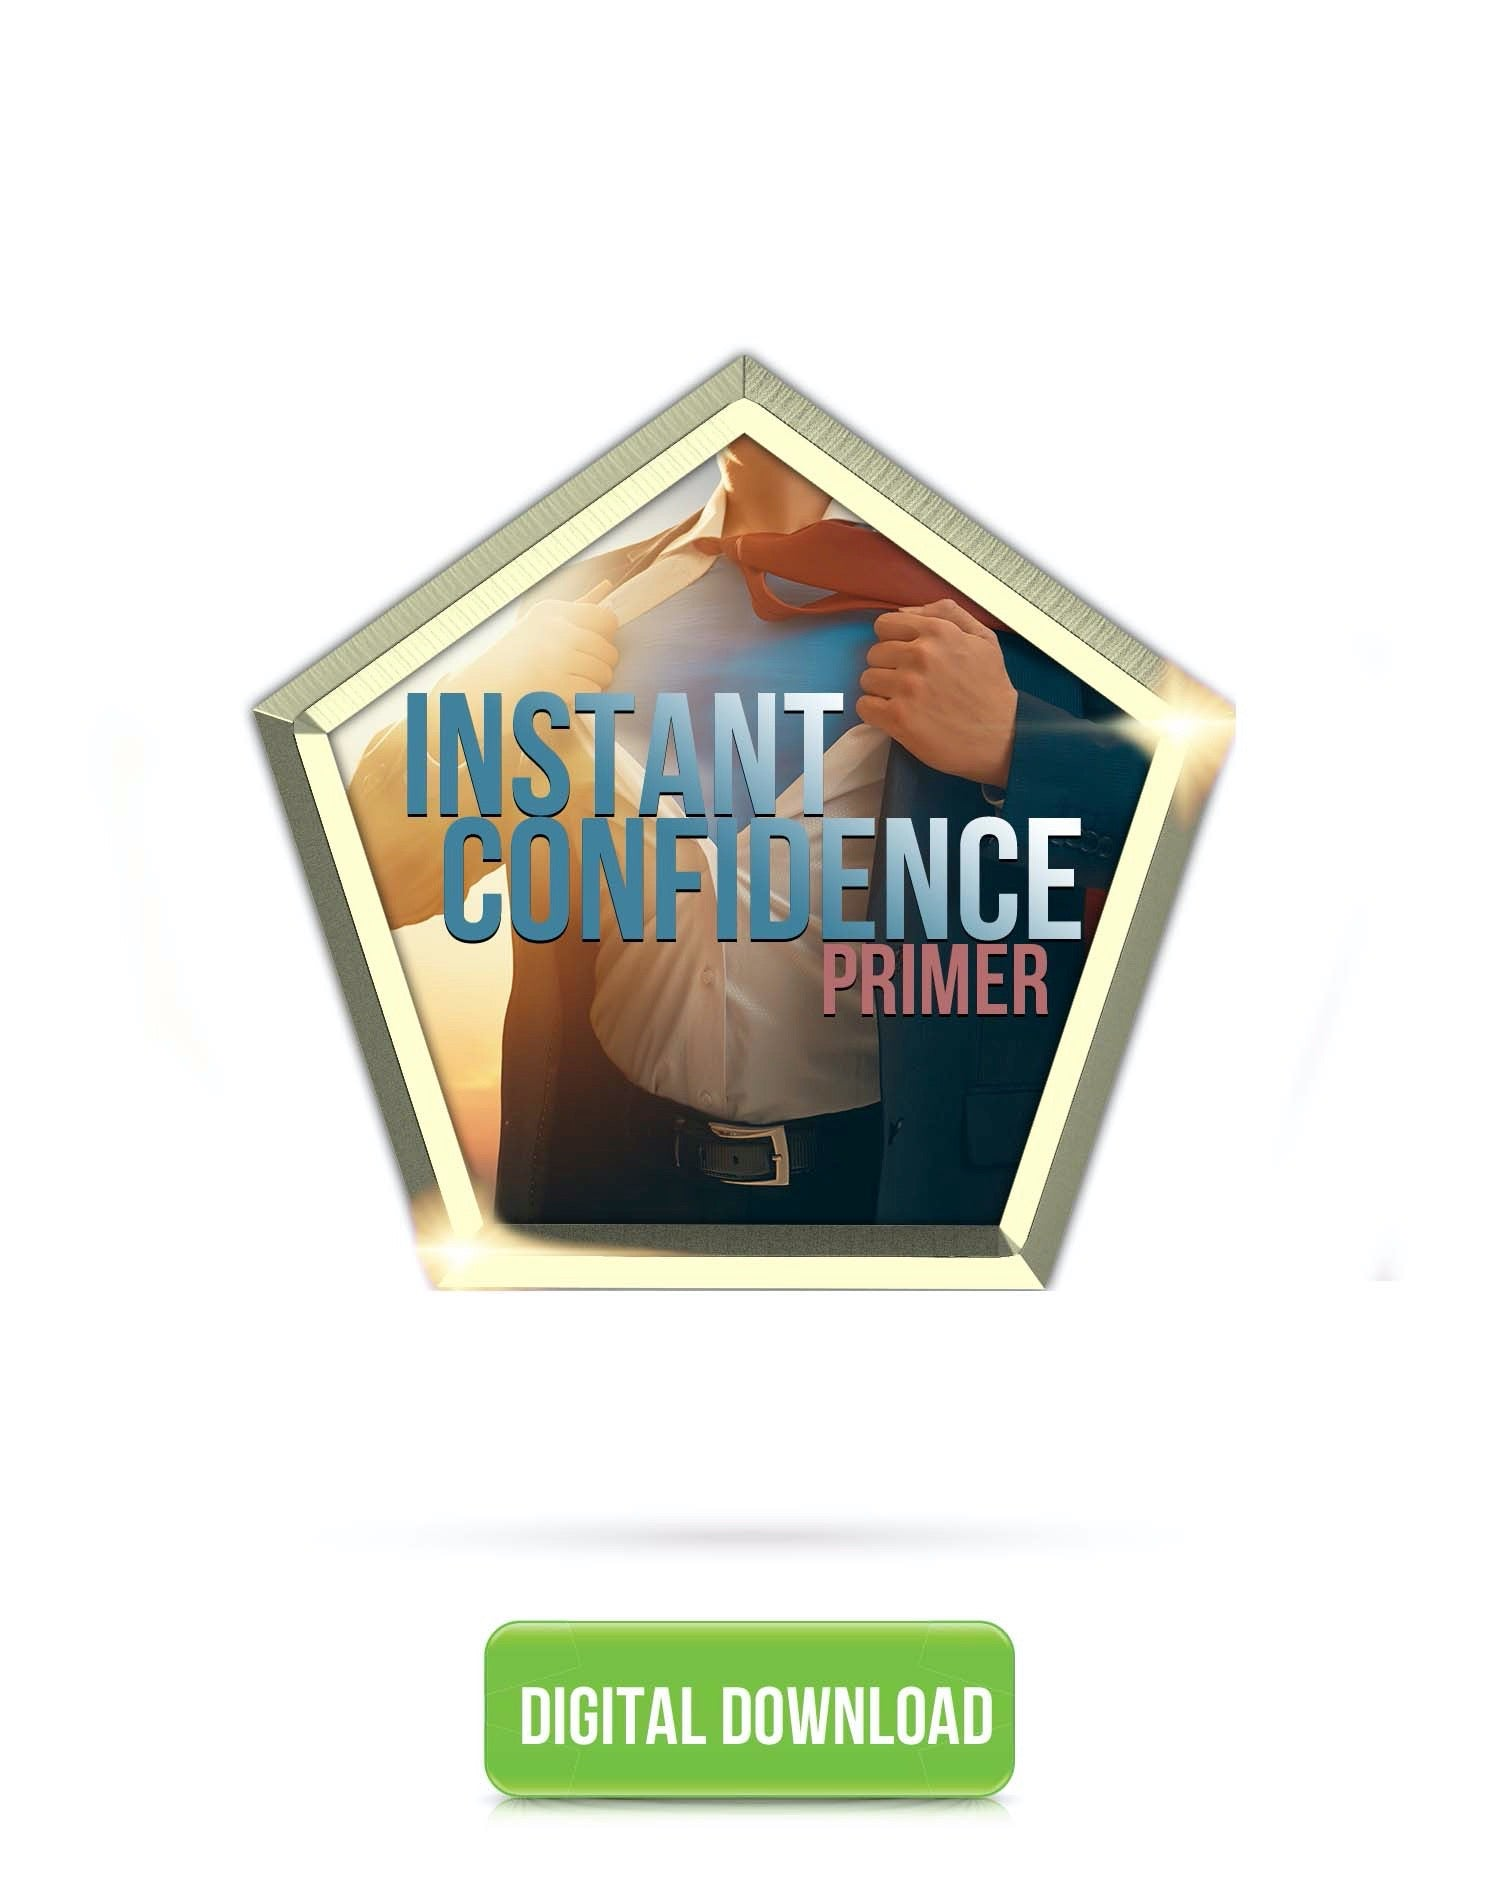 Instant Confidence Primer | Feel An Immediate Boost Of Confidence